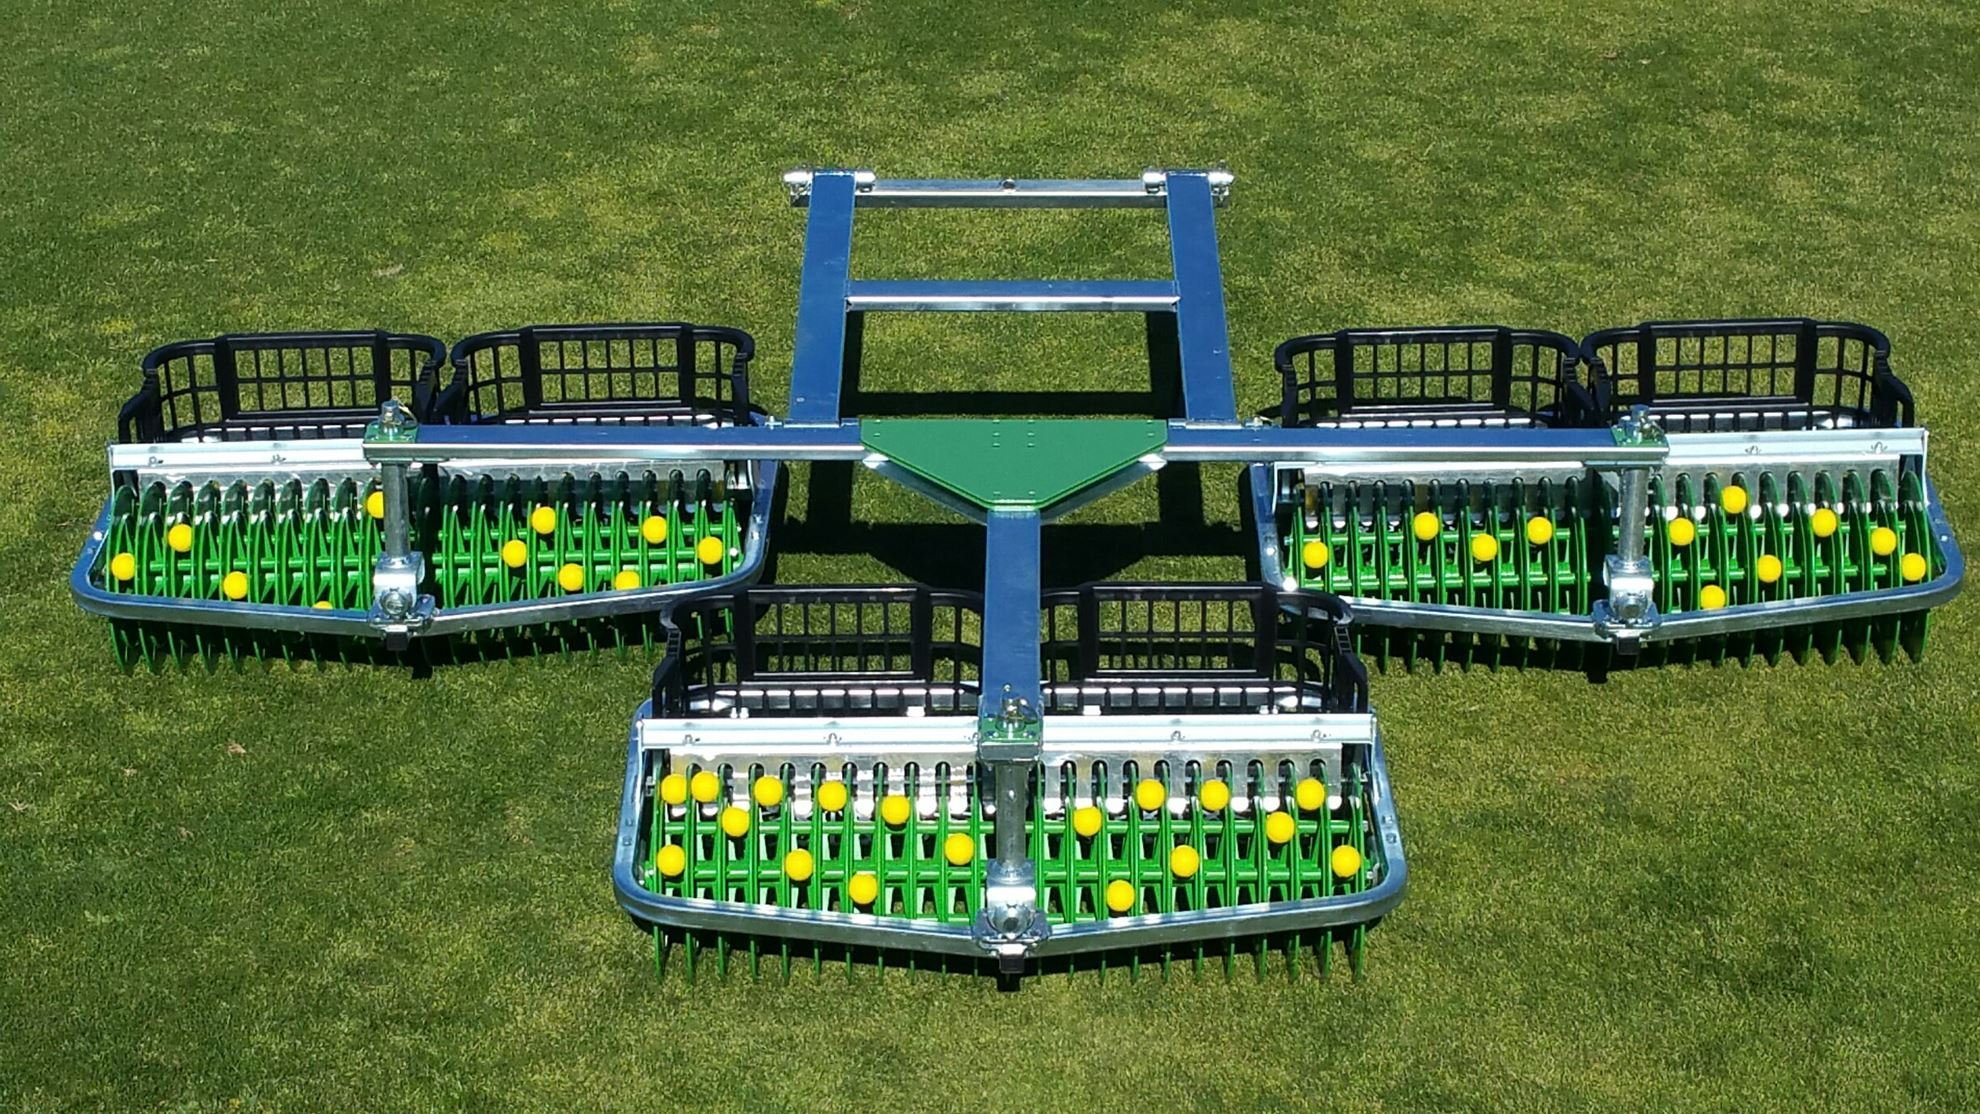 Ball Picker Golf Course Accessories And Equipment The